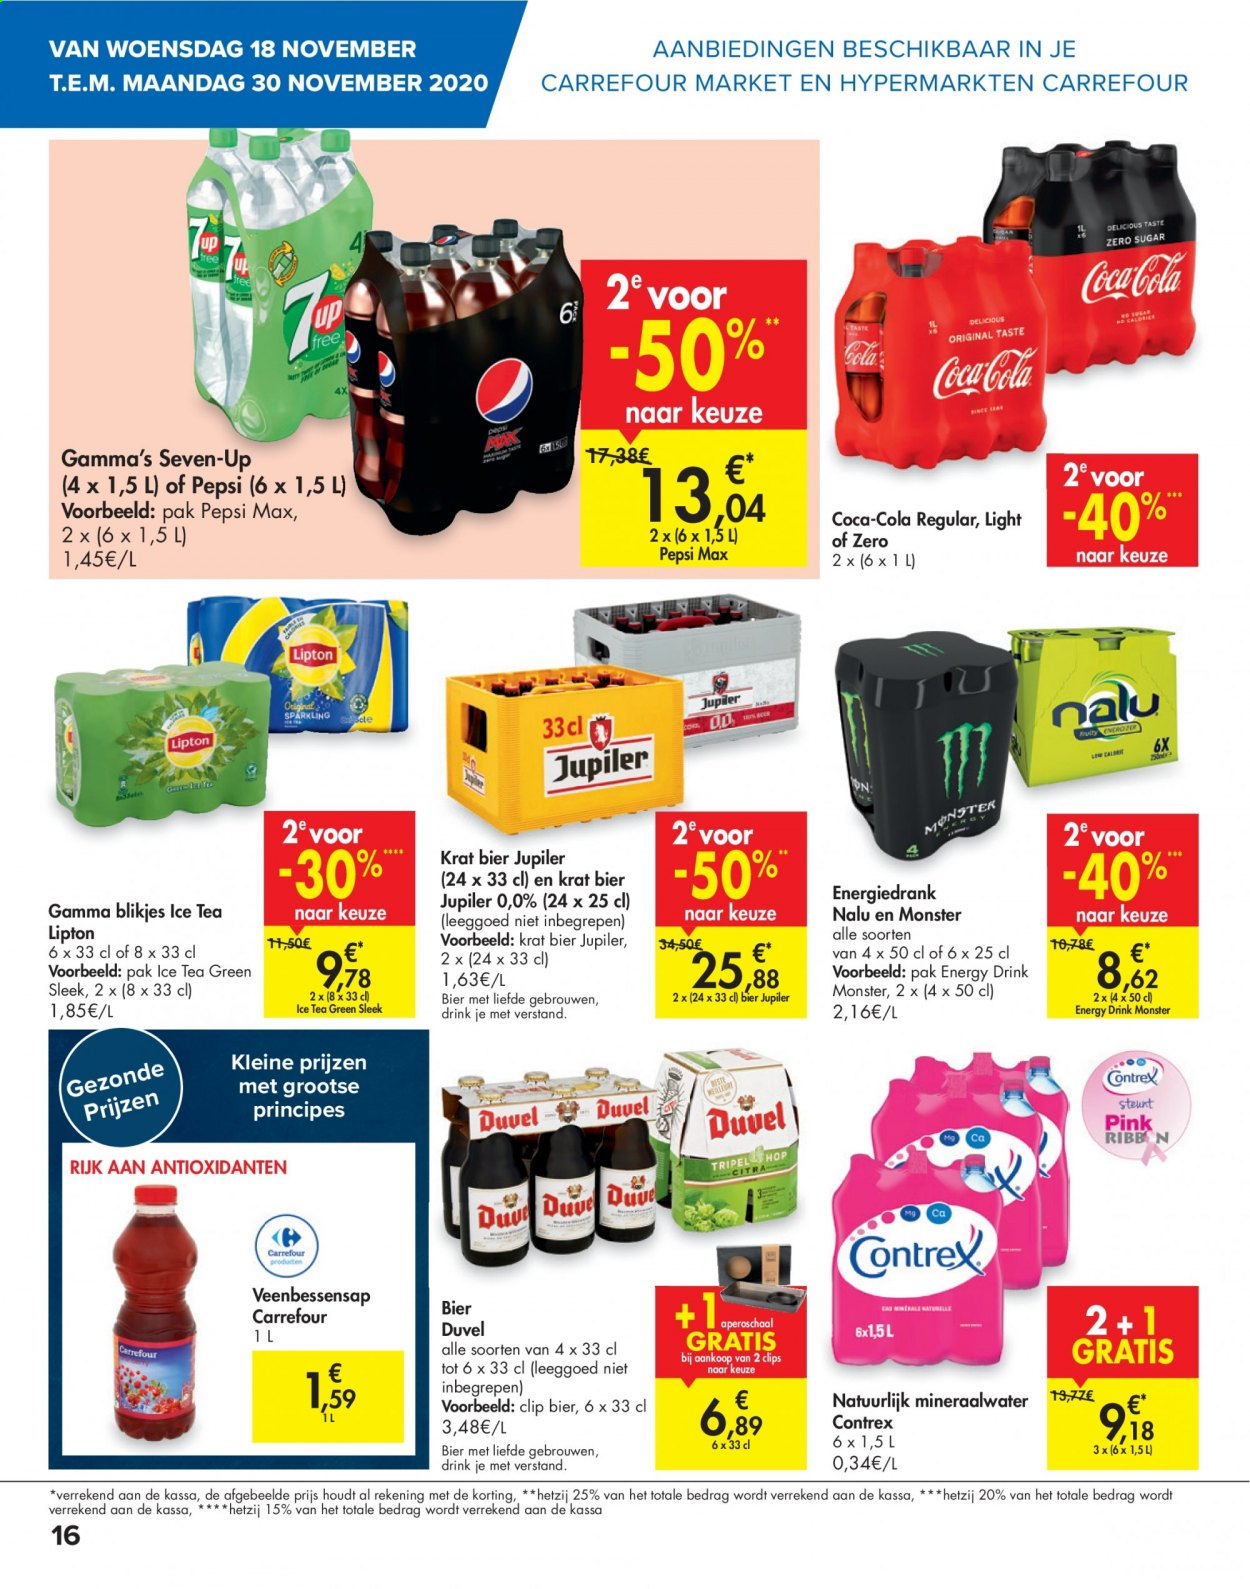 Carrefour-aanbieding - 18.11.2020 - 23.11.2020 -  producten in de aanbieding - ice tea, mineraalwater, pepsi, tea, energy drink, bier. Pagina 16.